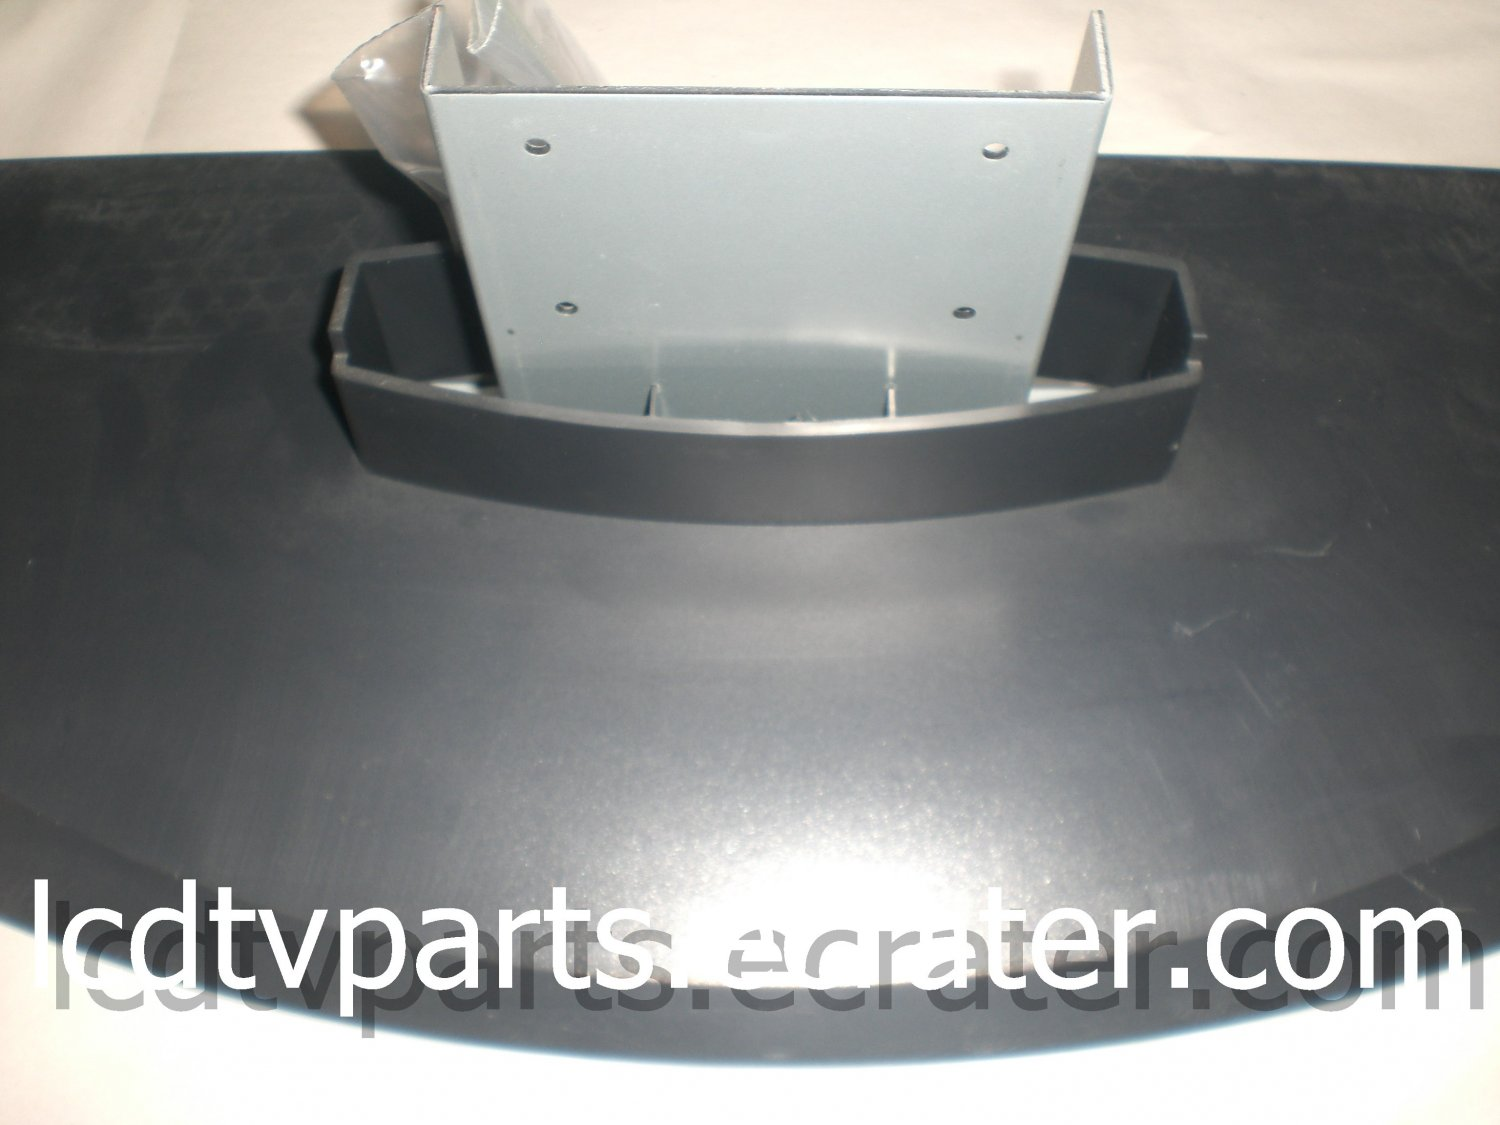 Original LCD TV Pedestal base Stand for WESTINGHOUSE W3213